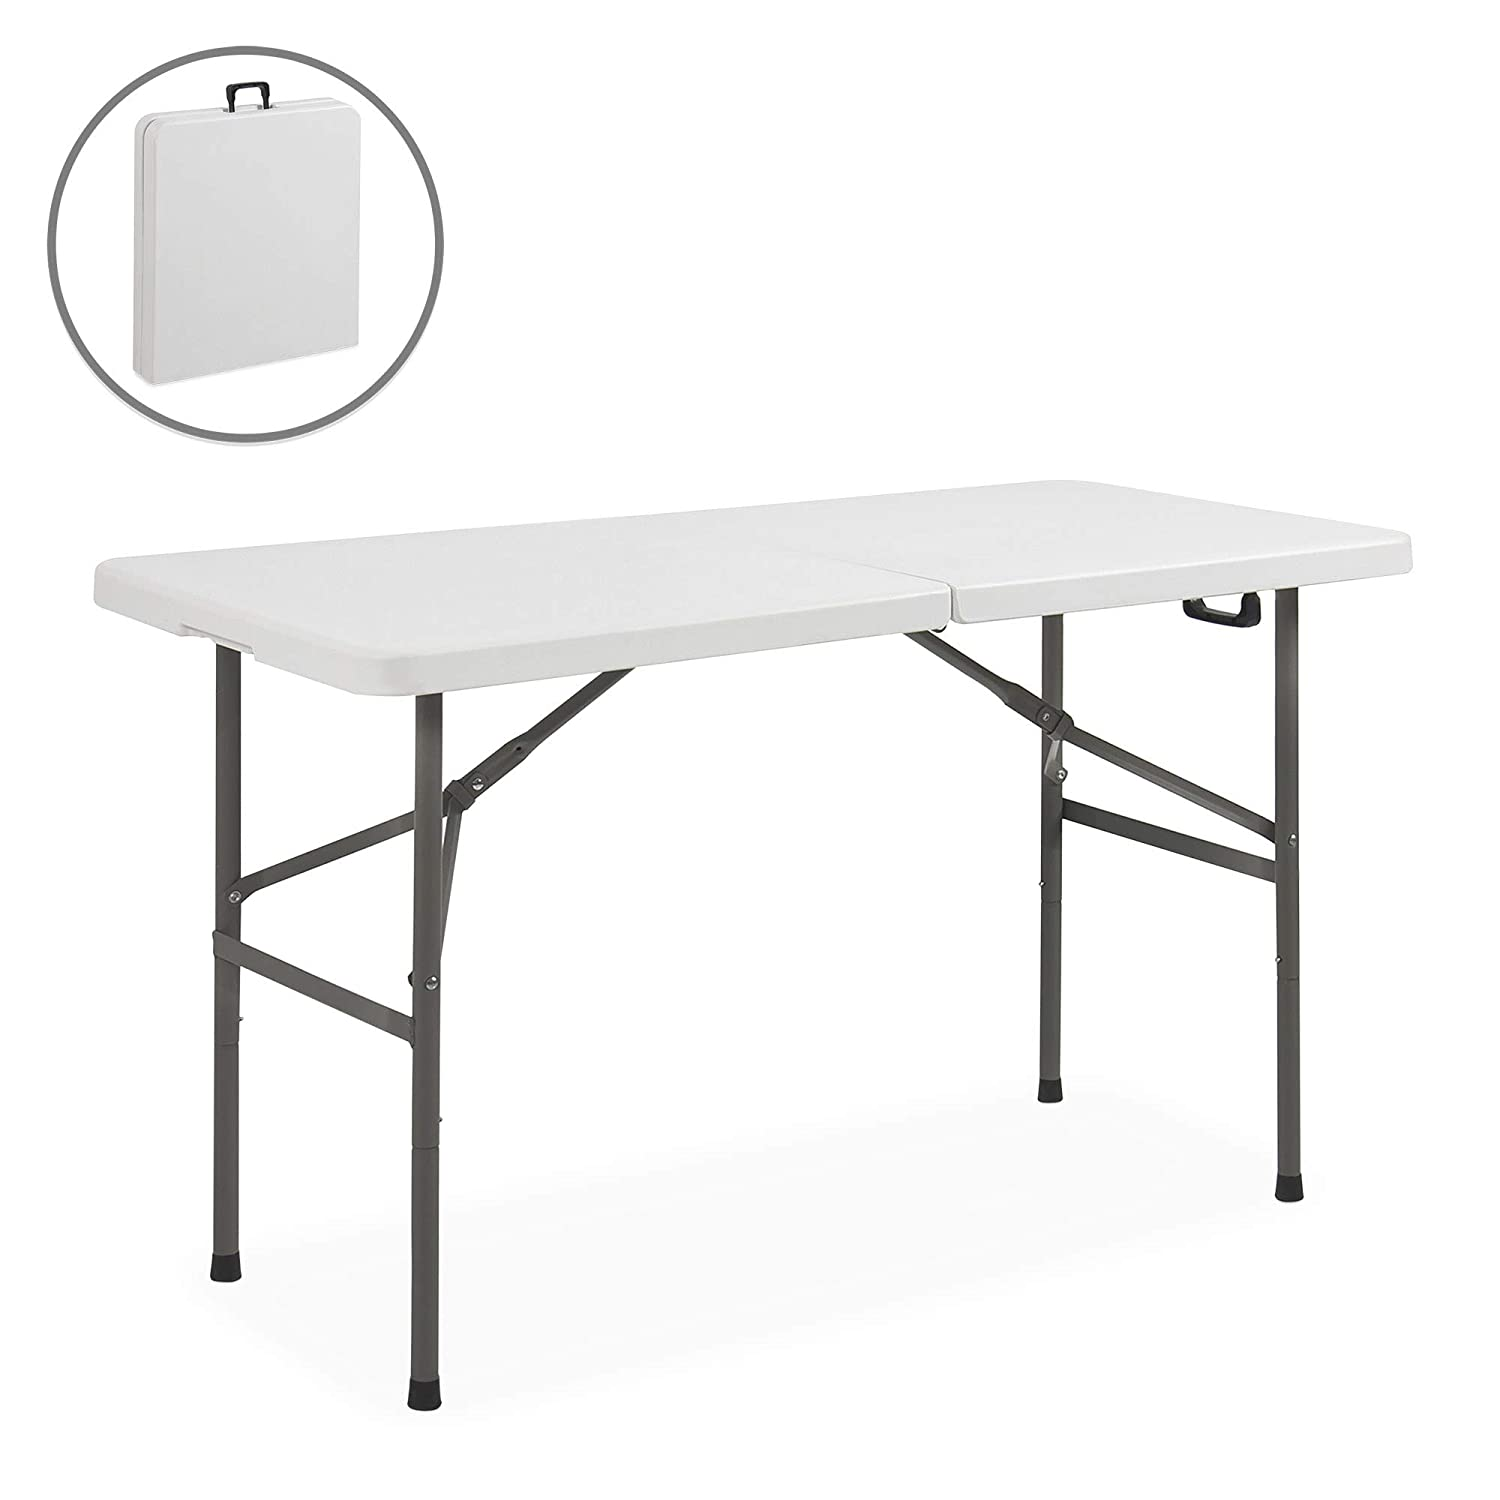 Best Choice Products Portable 4 Foot Folding Utility Table - White